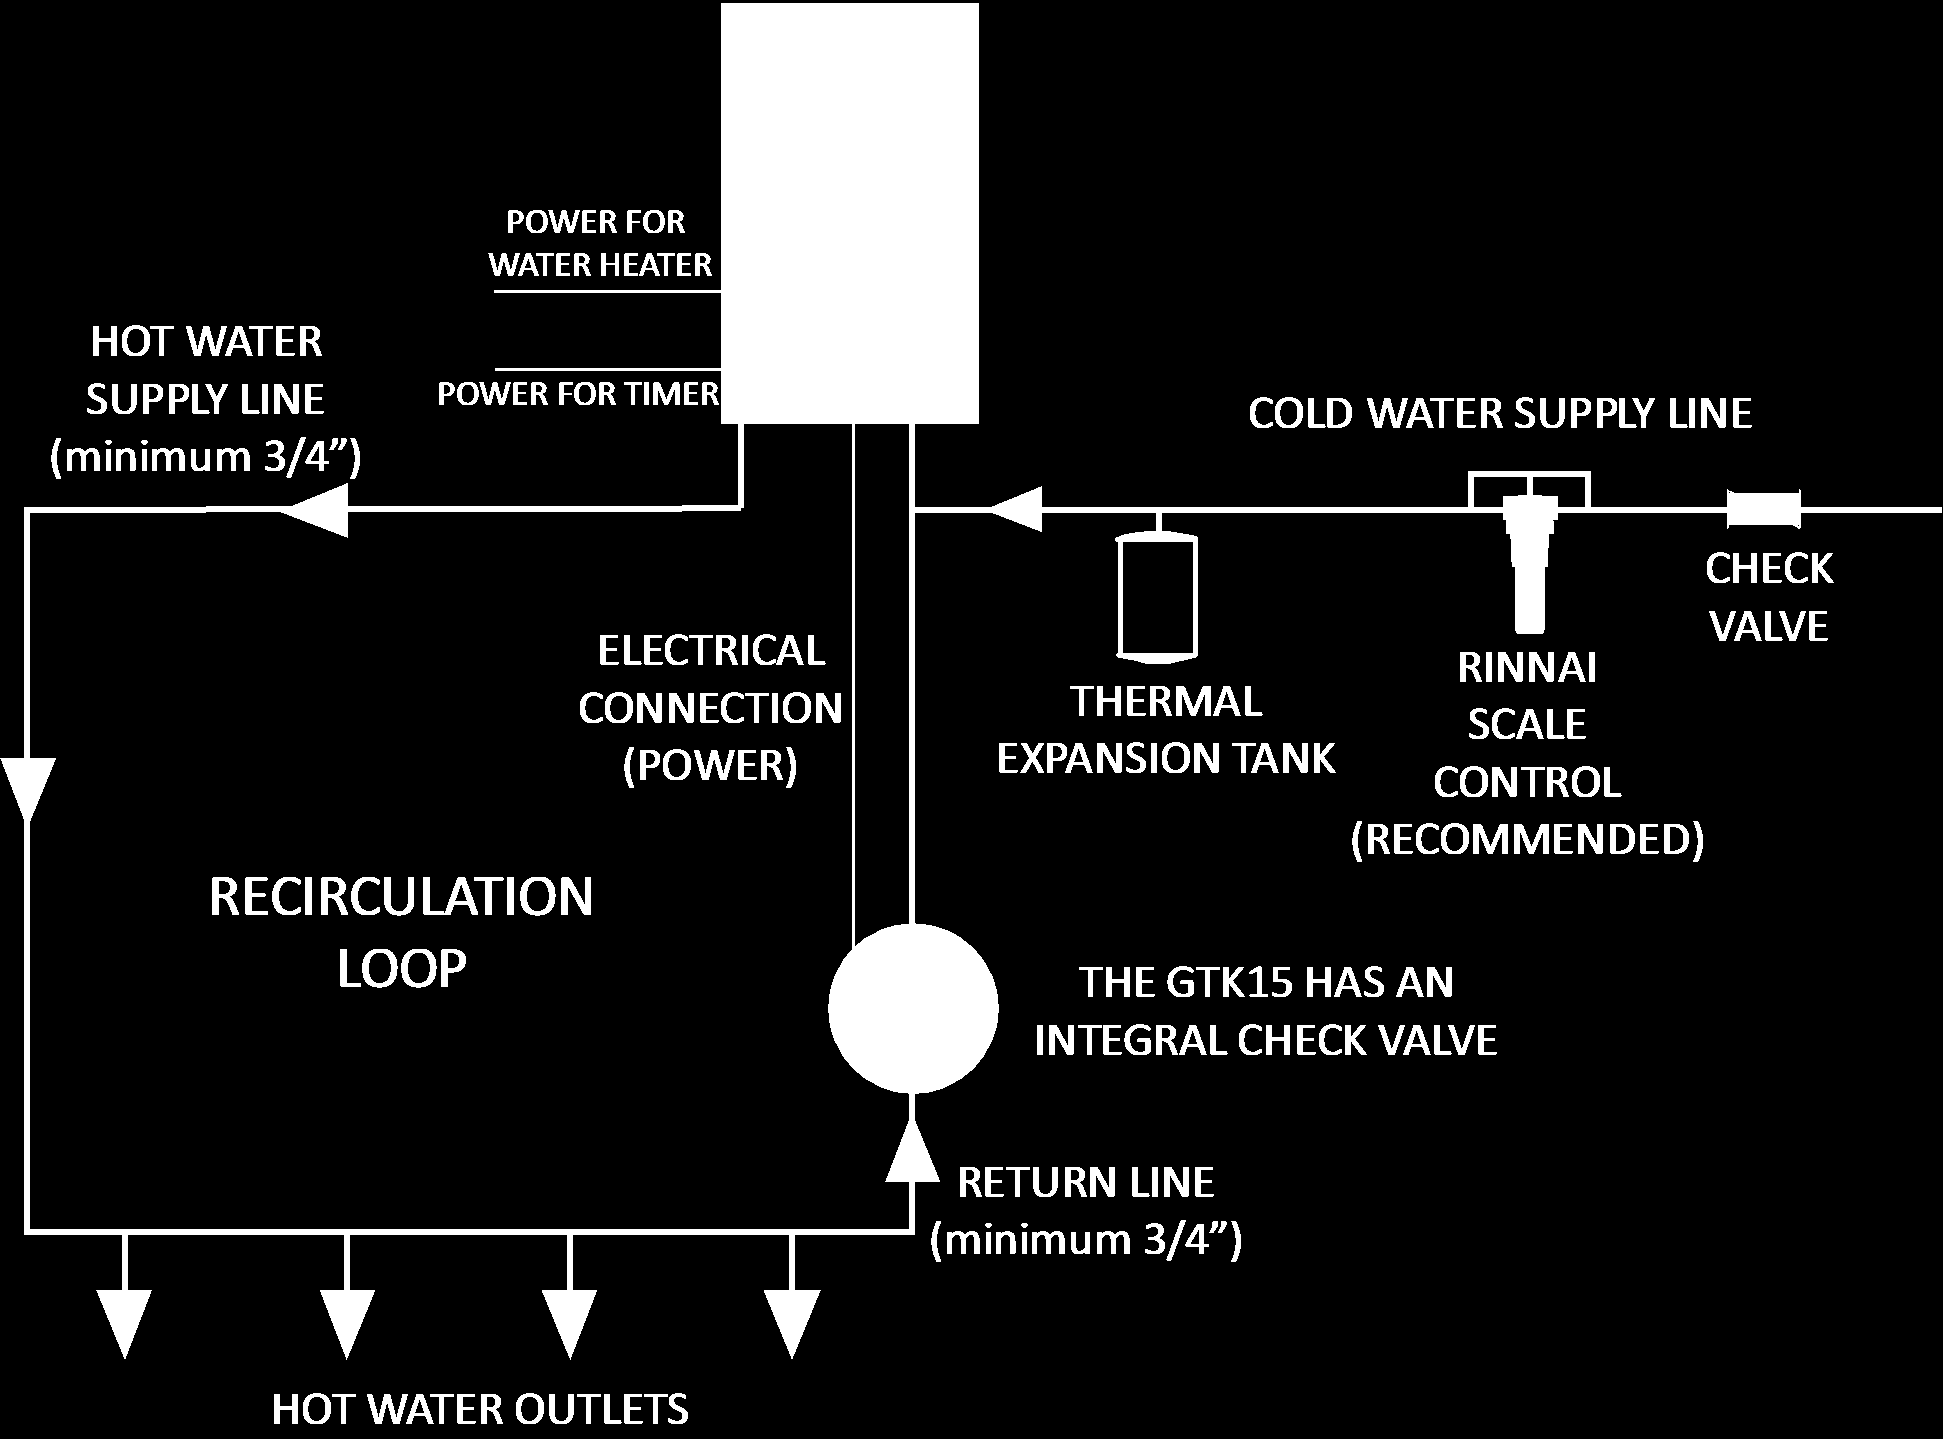 Rinnai Circ Logic With Grundfos Gtk15 Kit Description Pdf Taco Pump Wire Diagram Timers Pipe Length Equivalent 1 Using 120 F Up To